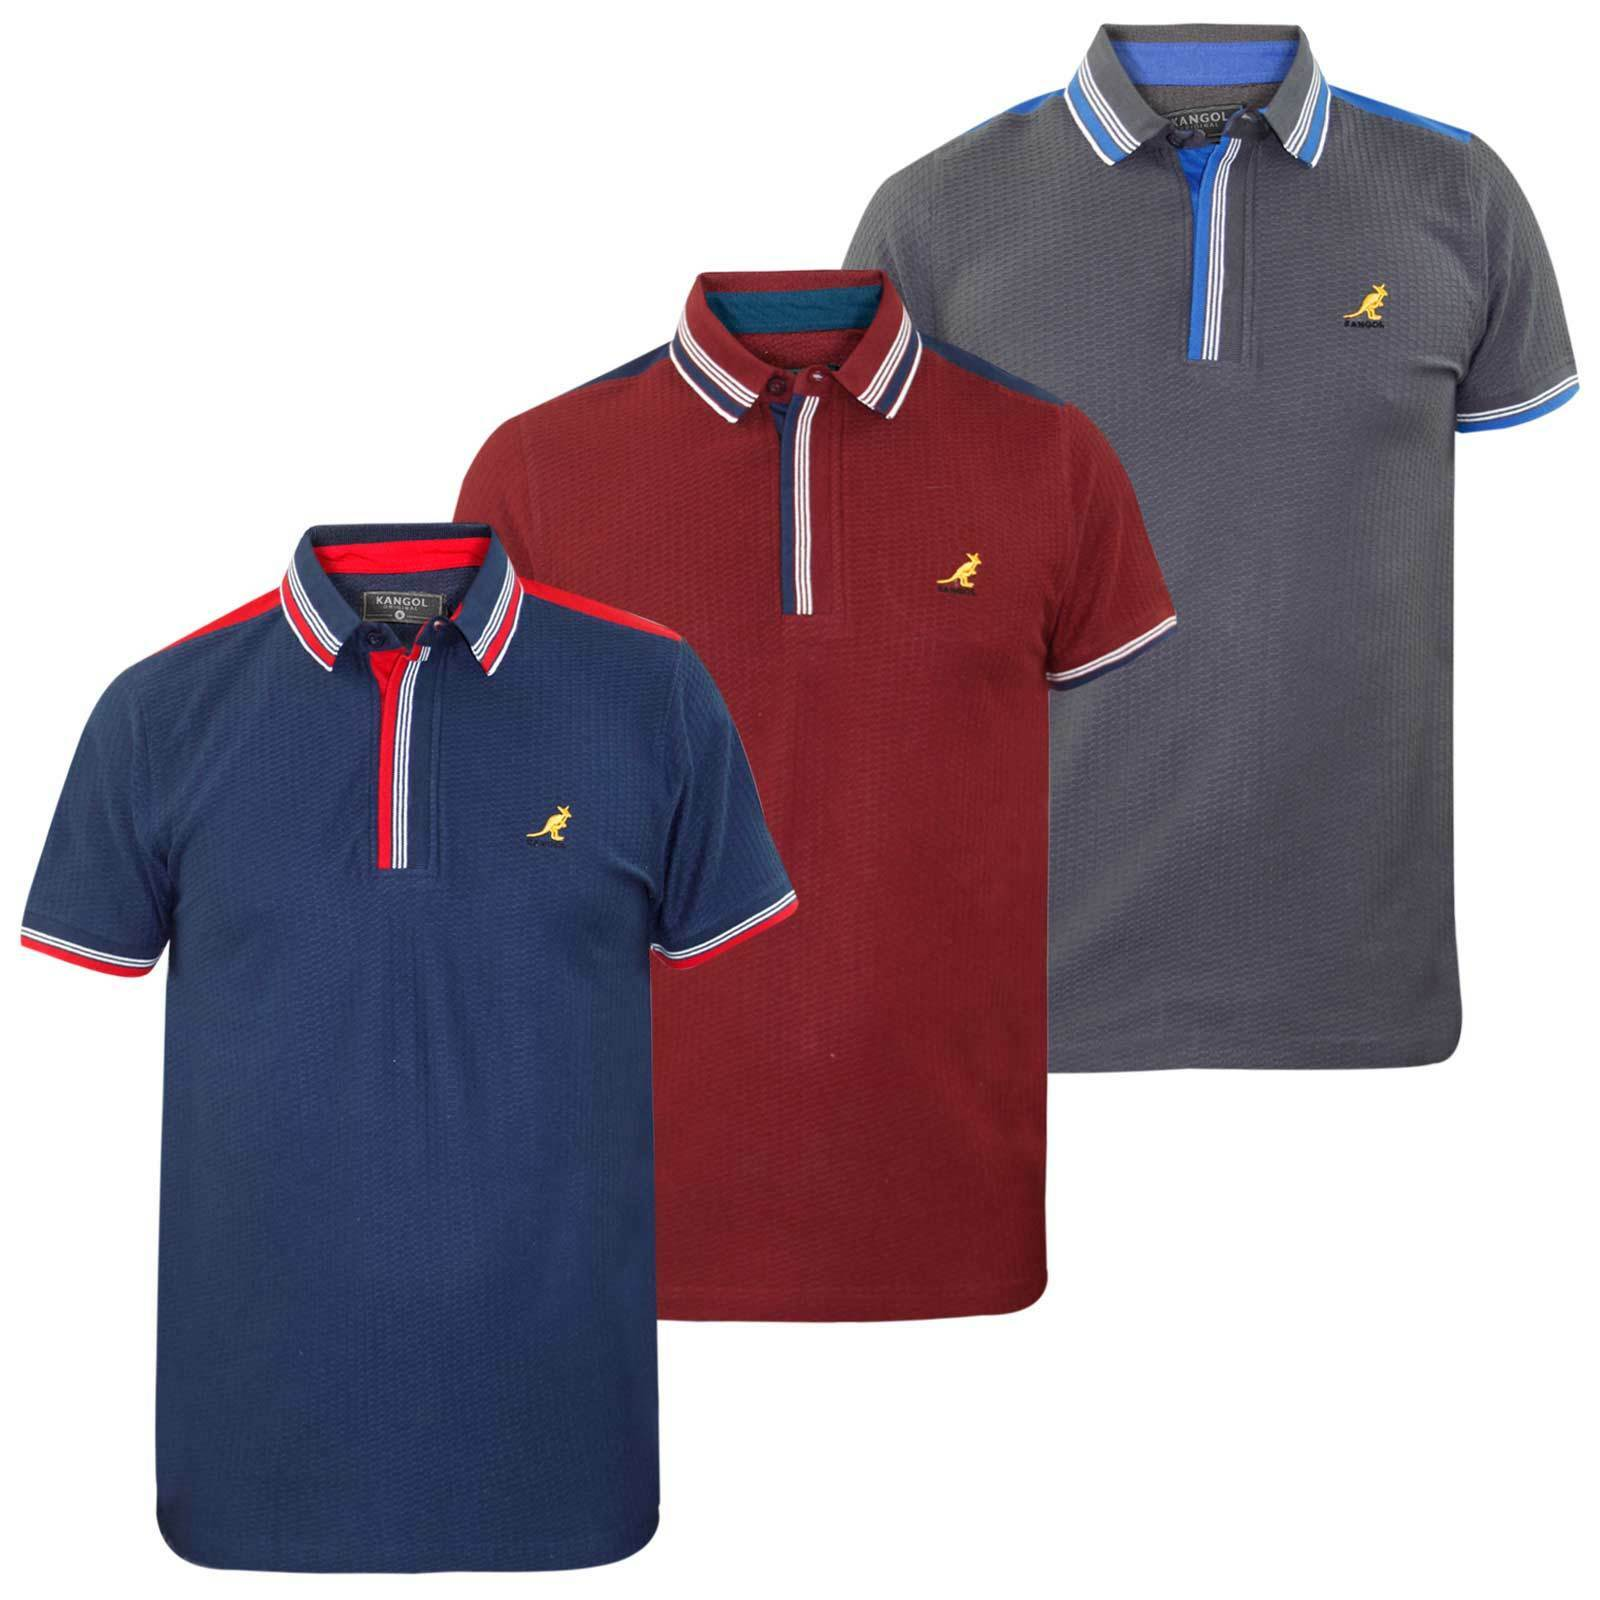 c62670ae Details about Mens Kangol Brand Polo T Shirt Contrasted Designer Top Self  Patten Fabric